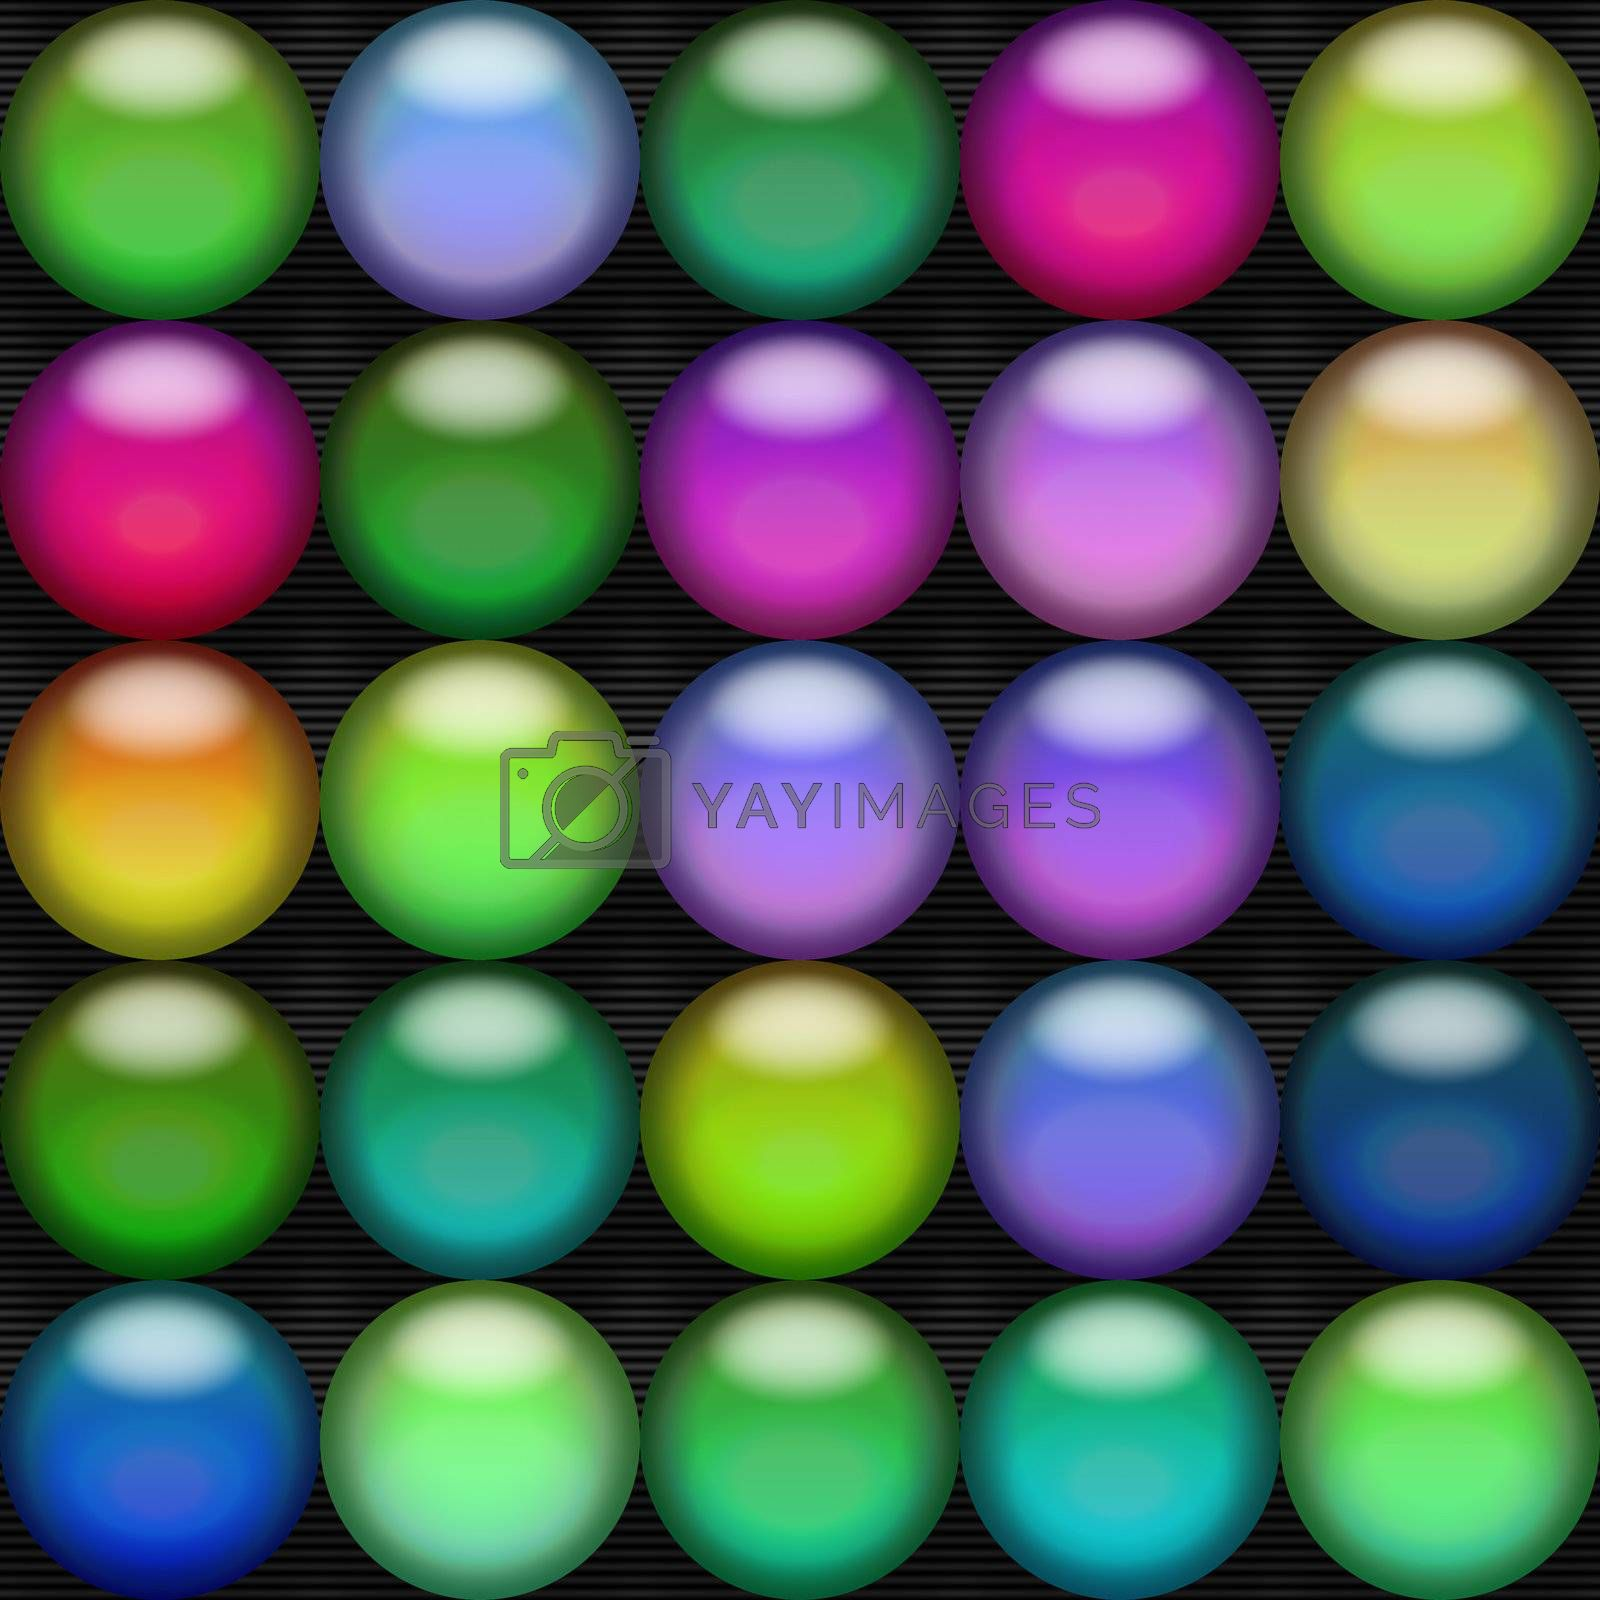 A bunch of colorful 3d spheres over a back background.  They could pass for jelly beans, buttons, or even L.E.D. bulbs.  This texture also tiles seamlessly as a pattern.